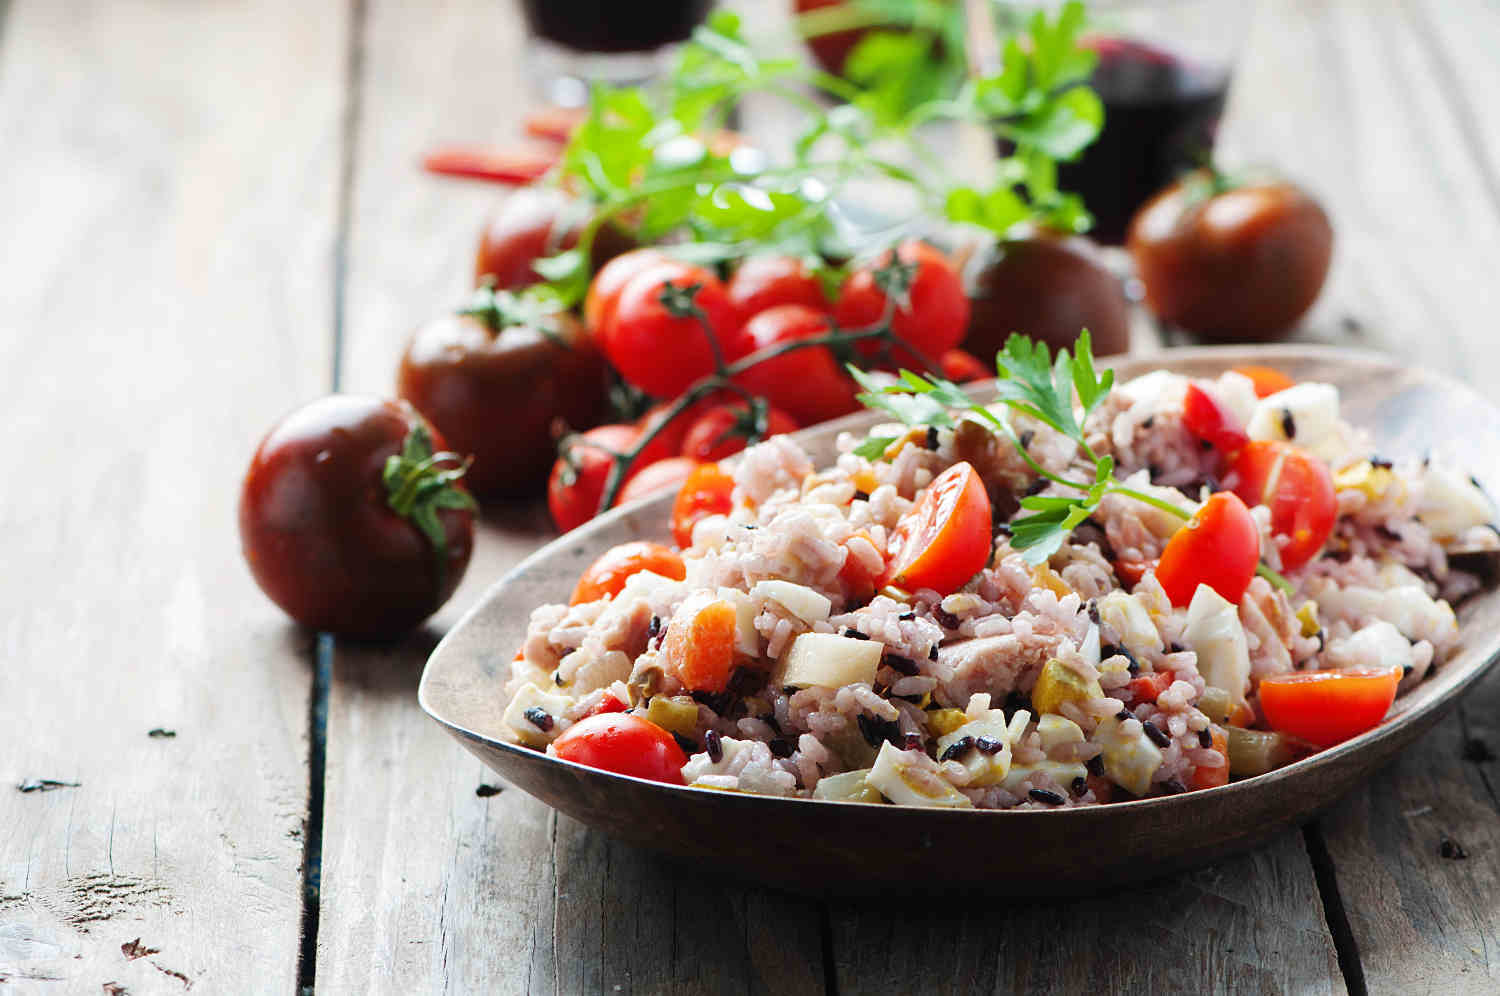 Bodytrim-Brown-Rice-Salad-Plus-Protein-Weight-loss-Recipe-Image